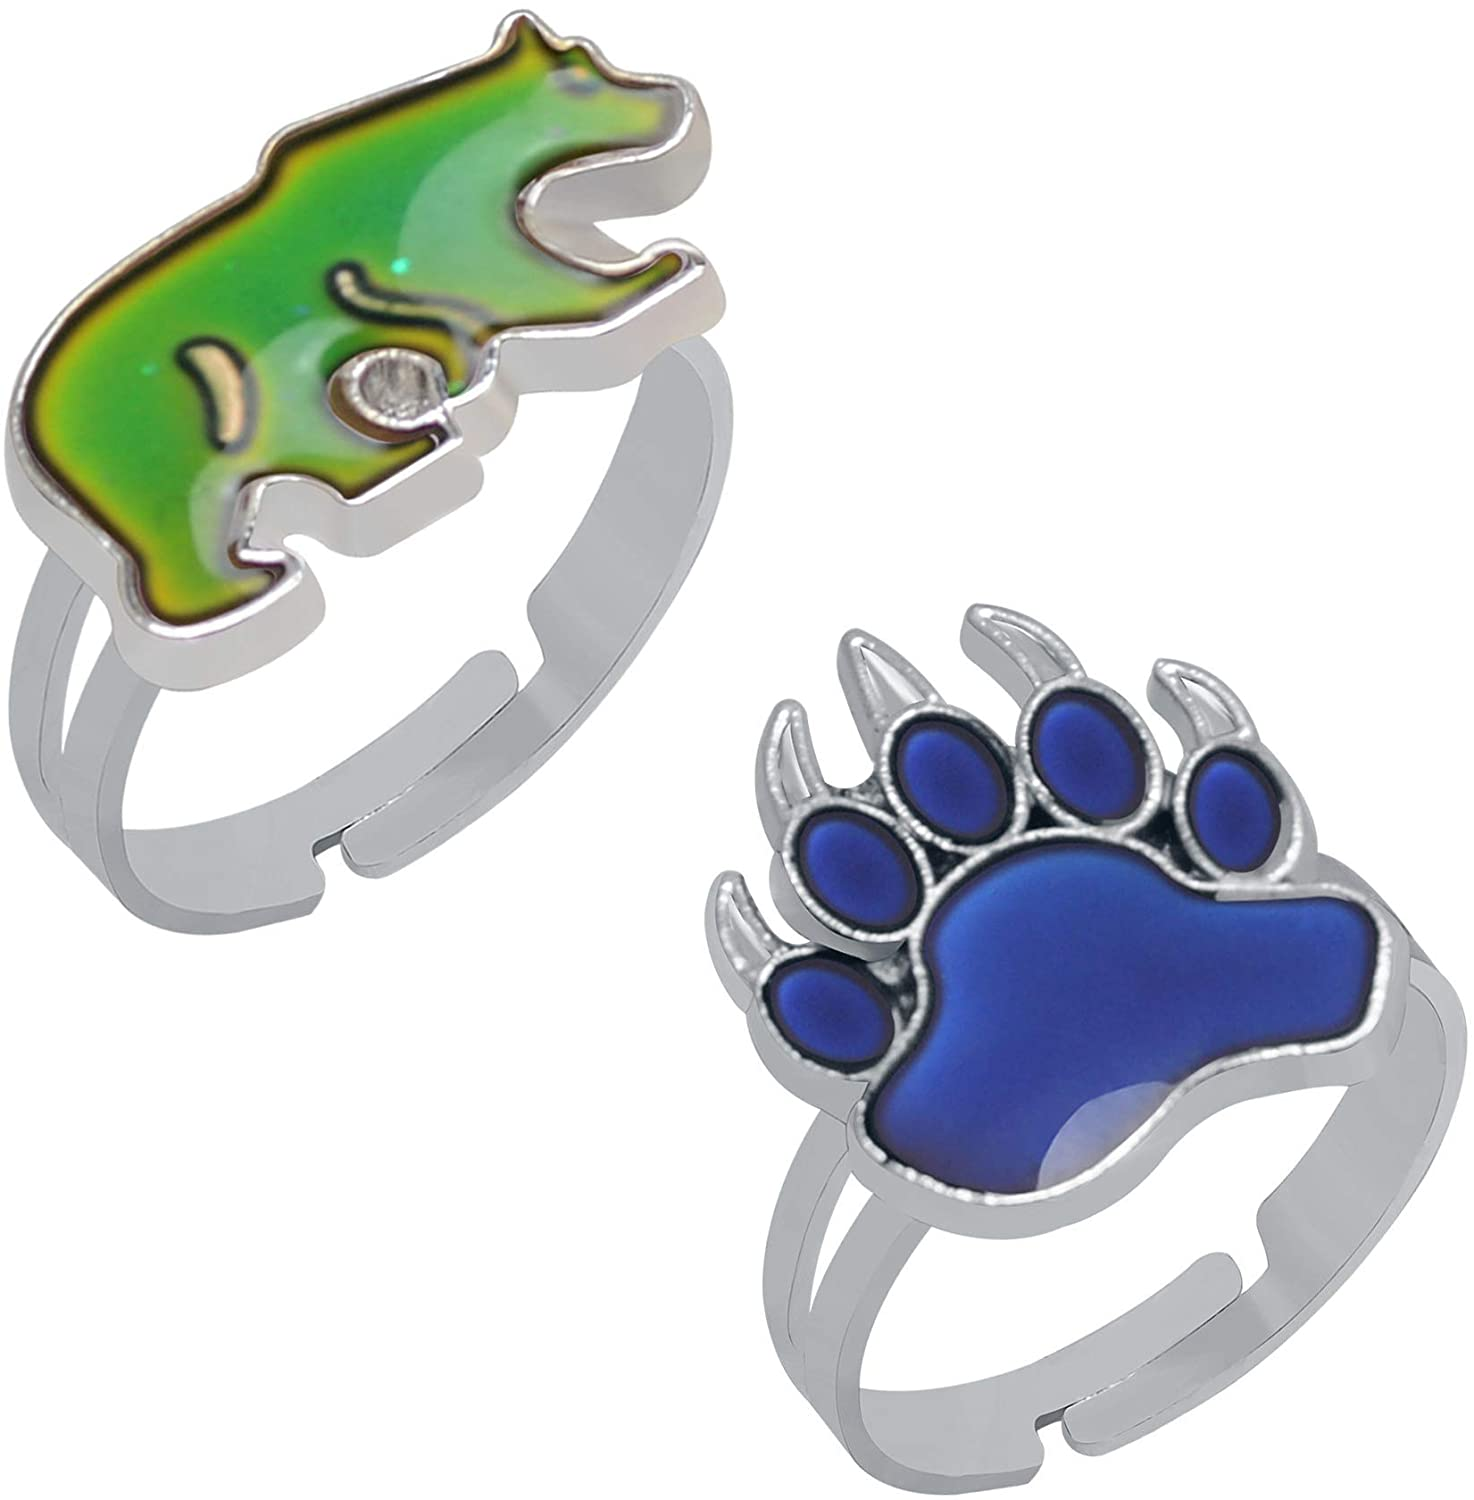 Wqaip Kerg 2 Pcs Bear and Paw Color Change Ring Adjustable Size Mood Ring for Kids Girls Boys